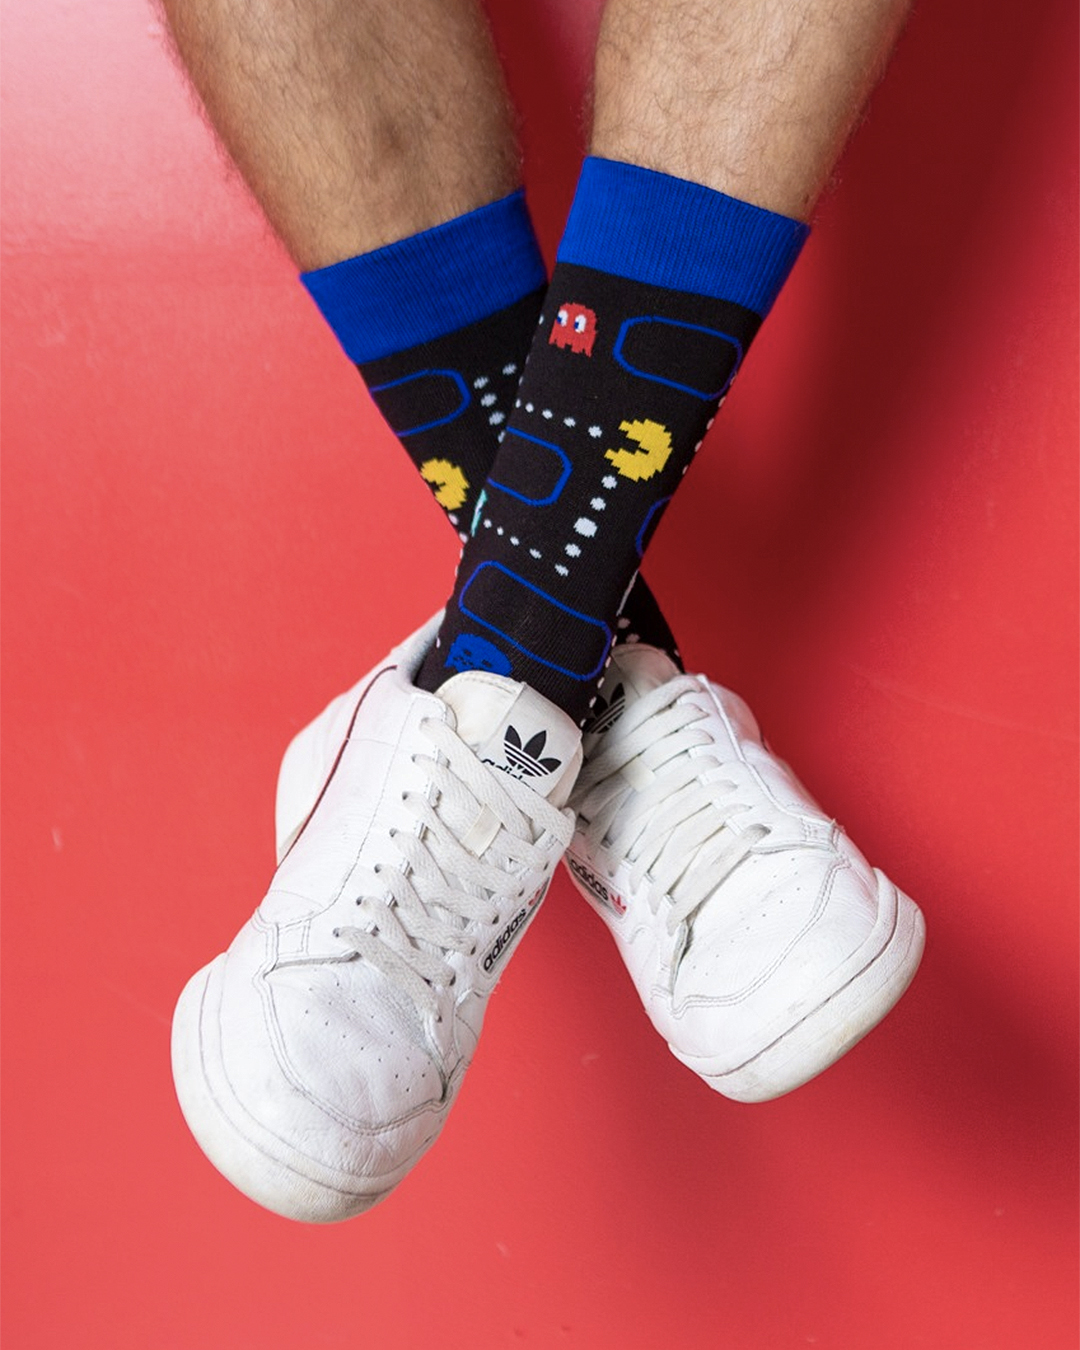 Cool pac man socks from Bamboozld.